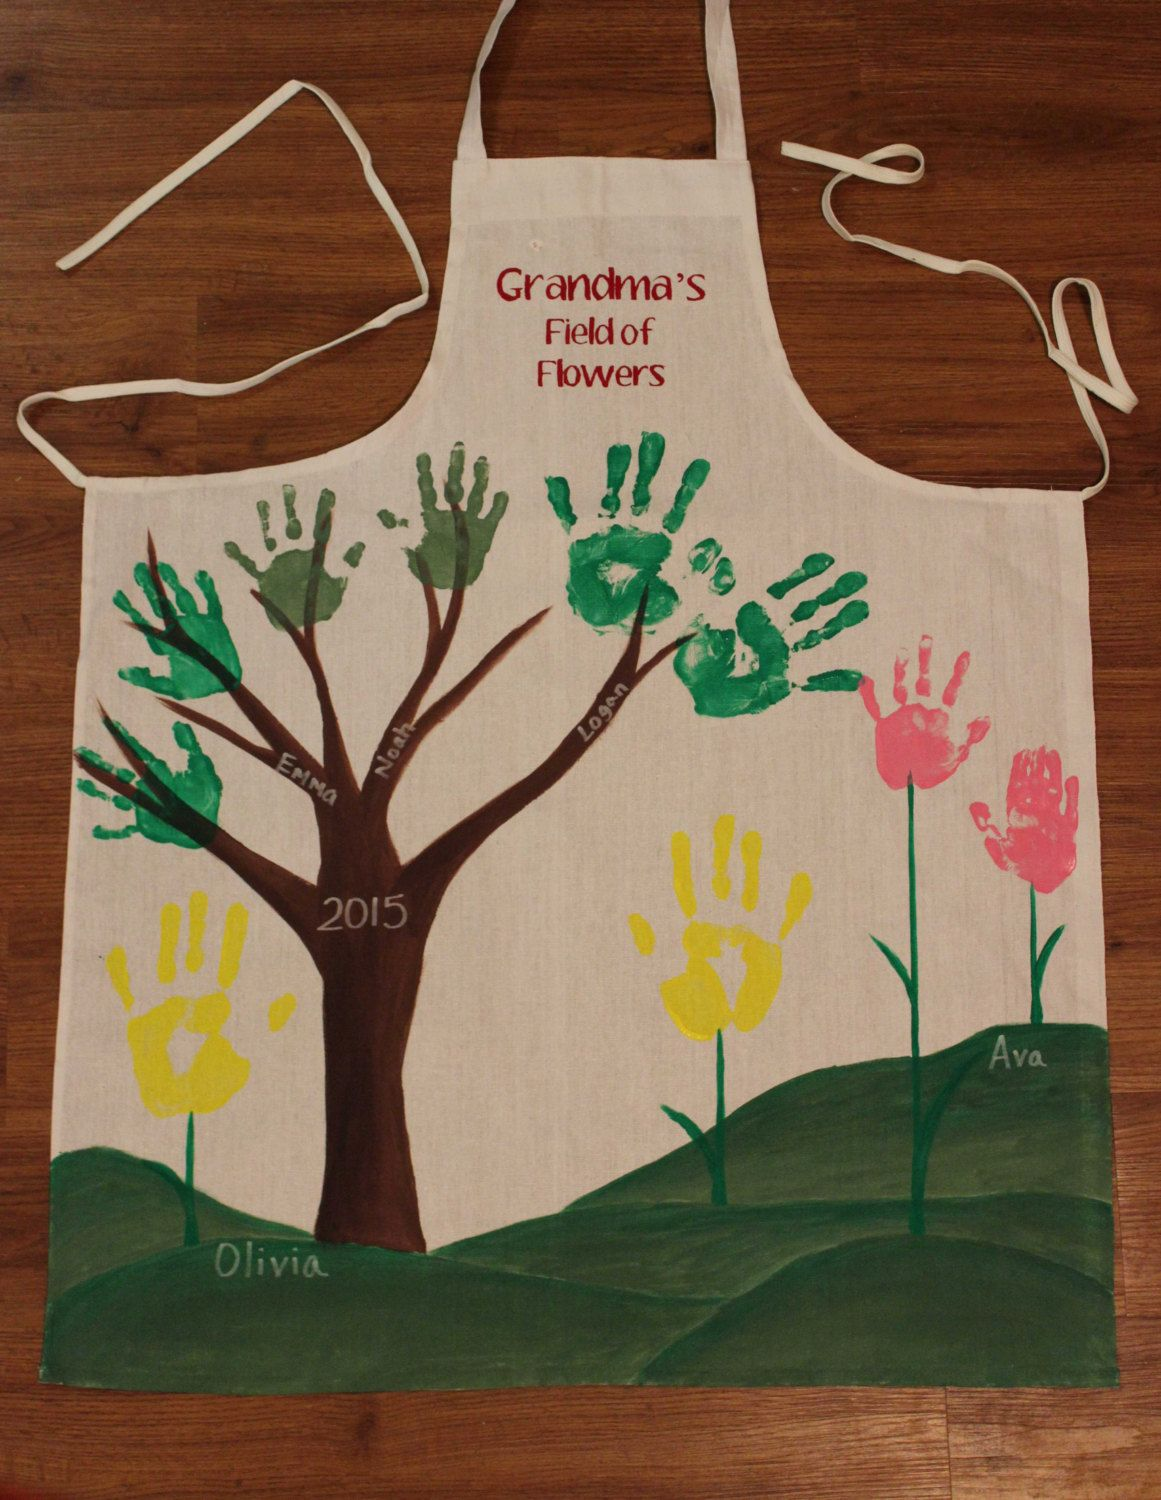 Diy Mothers Day Gifts For Grandma Mother 39s Day Partial Diy Hand Print Apron For Grandmother